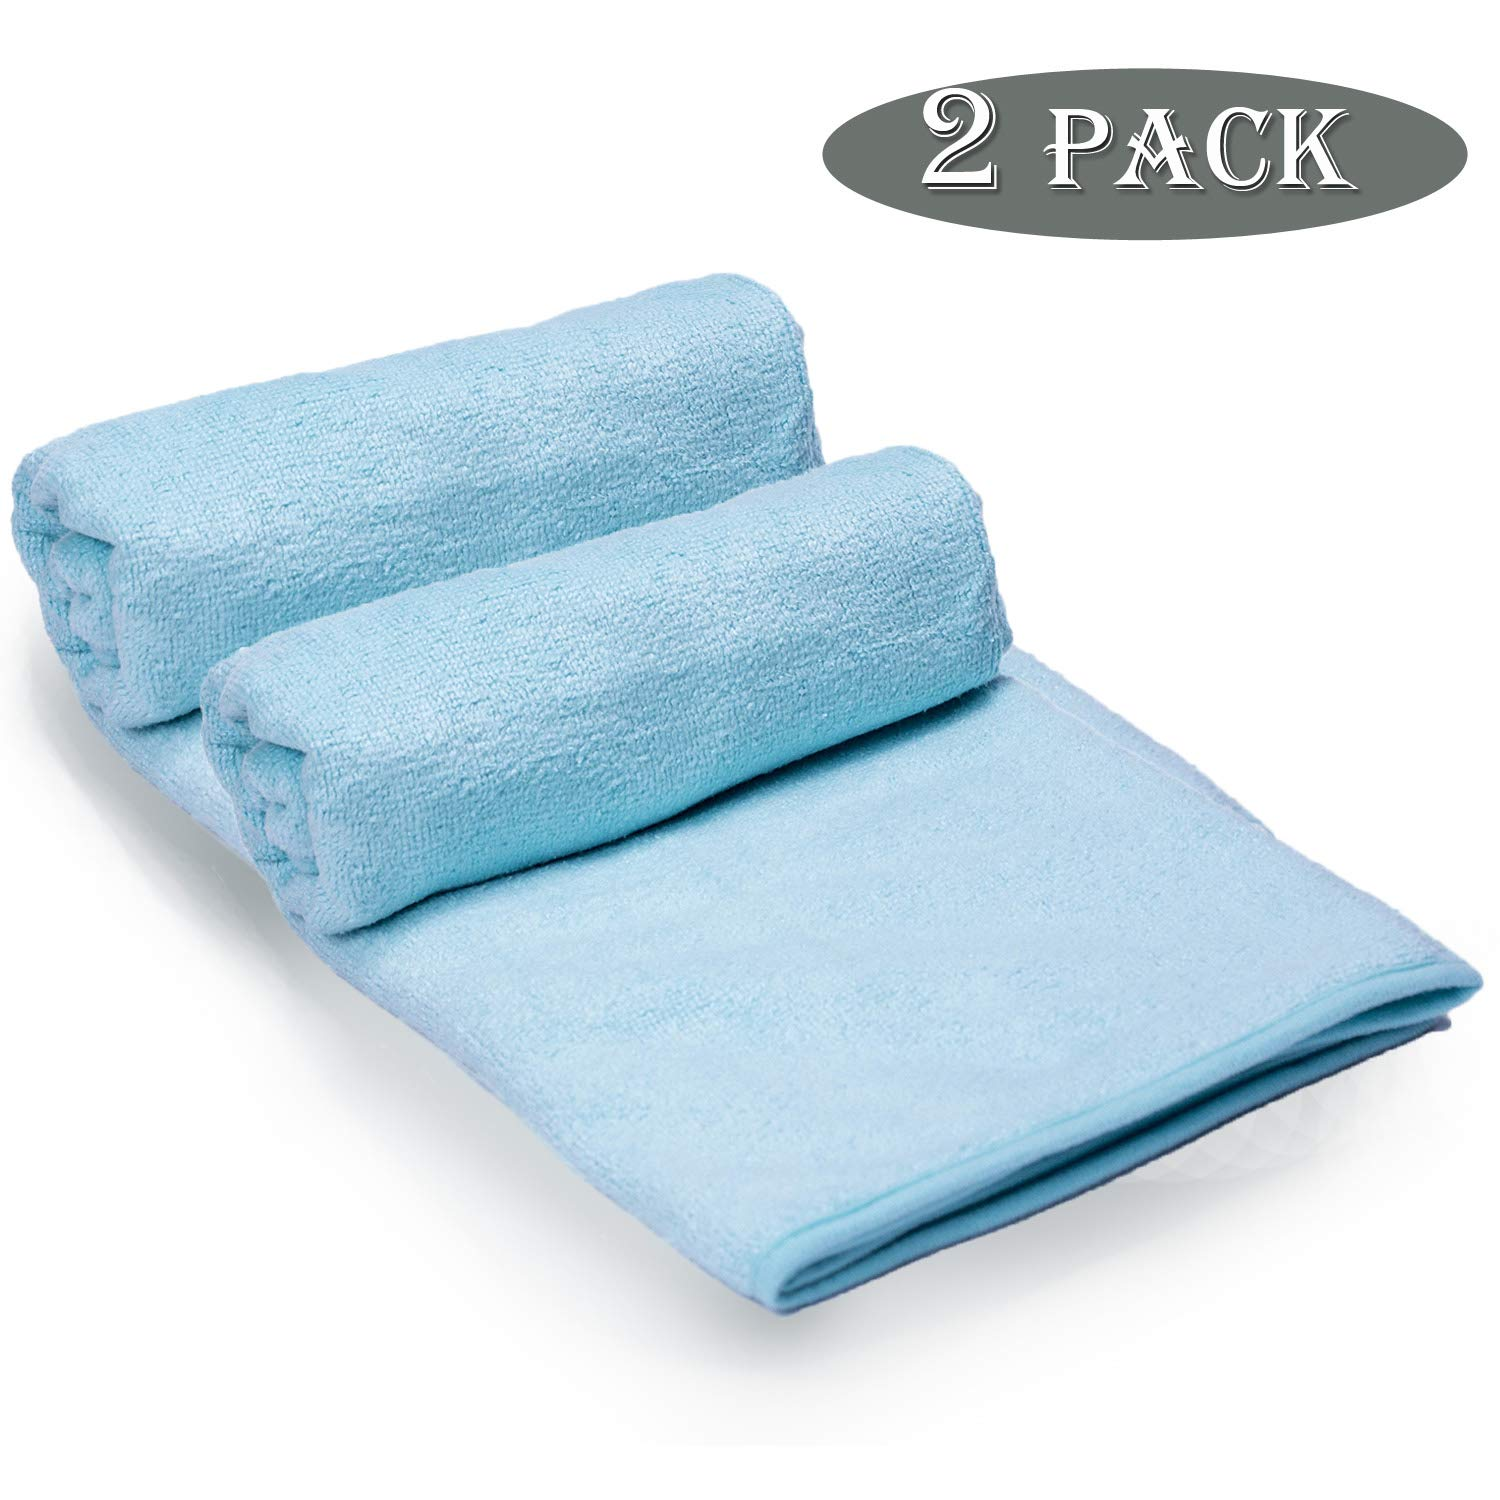 UNIC Microfiber Bath Towel Sets, Super Absorbent Quick Drying and Antibacterial,Use as Pool Gym Beach Family Bathroom-Pack of 2,27×55 Inch Each(White) 27×55 Inch Each(White)